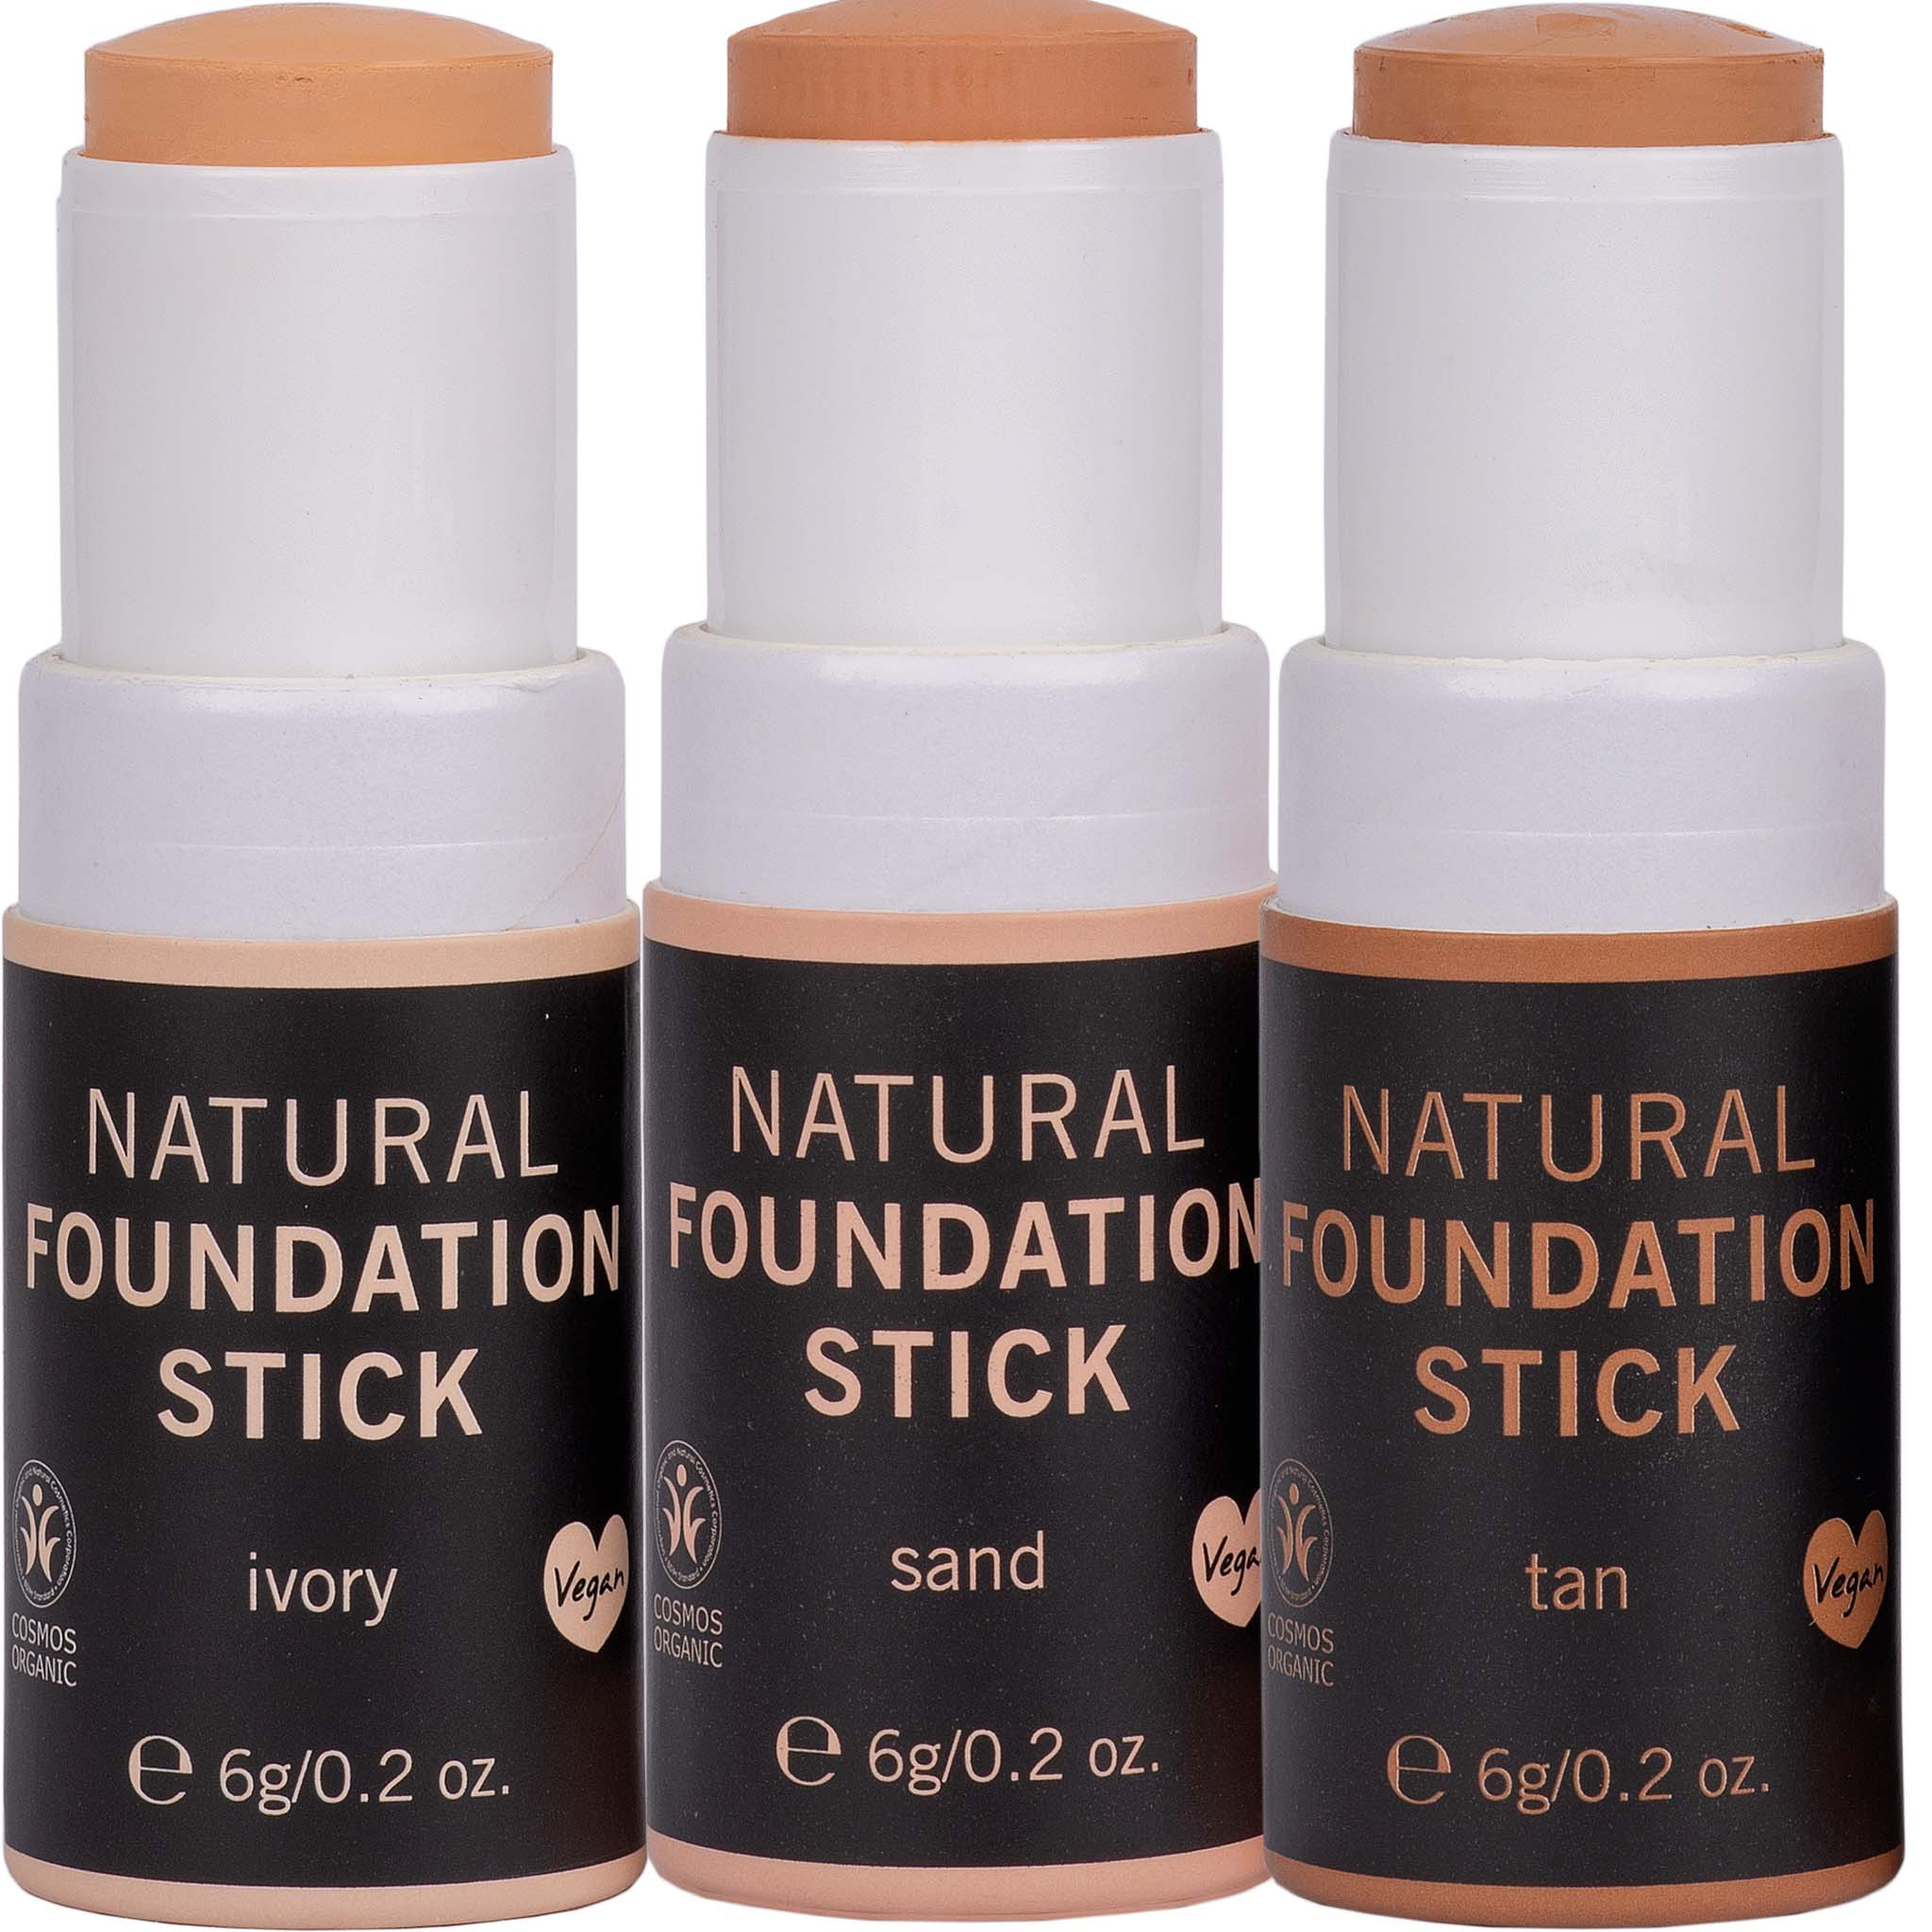 Natural Foundation Stick